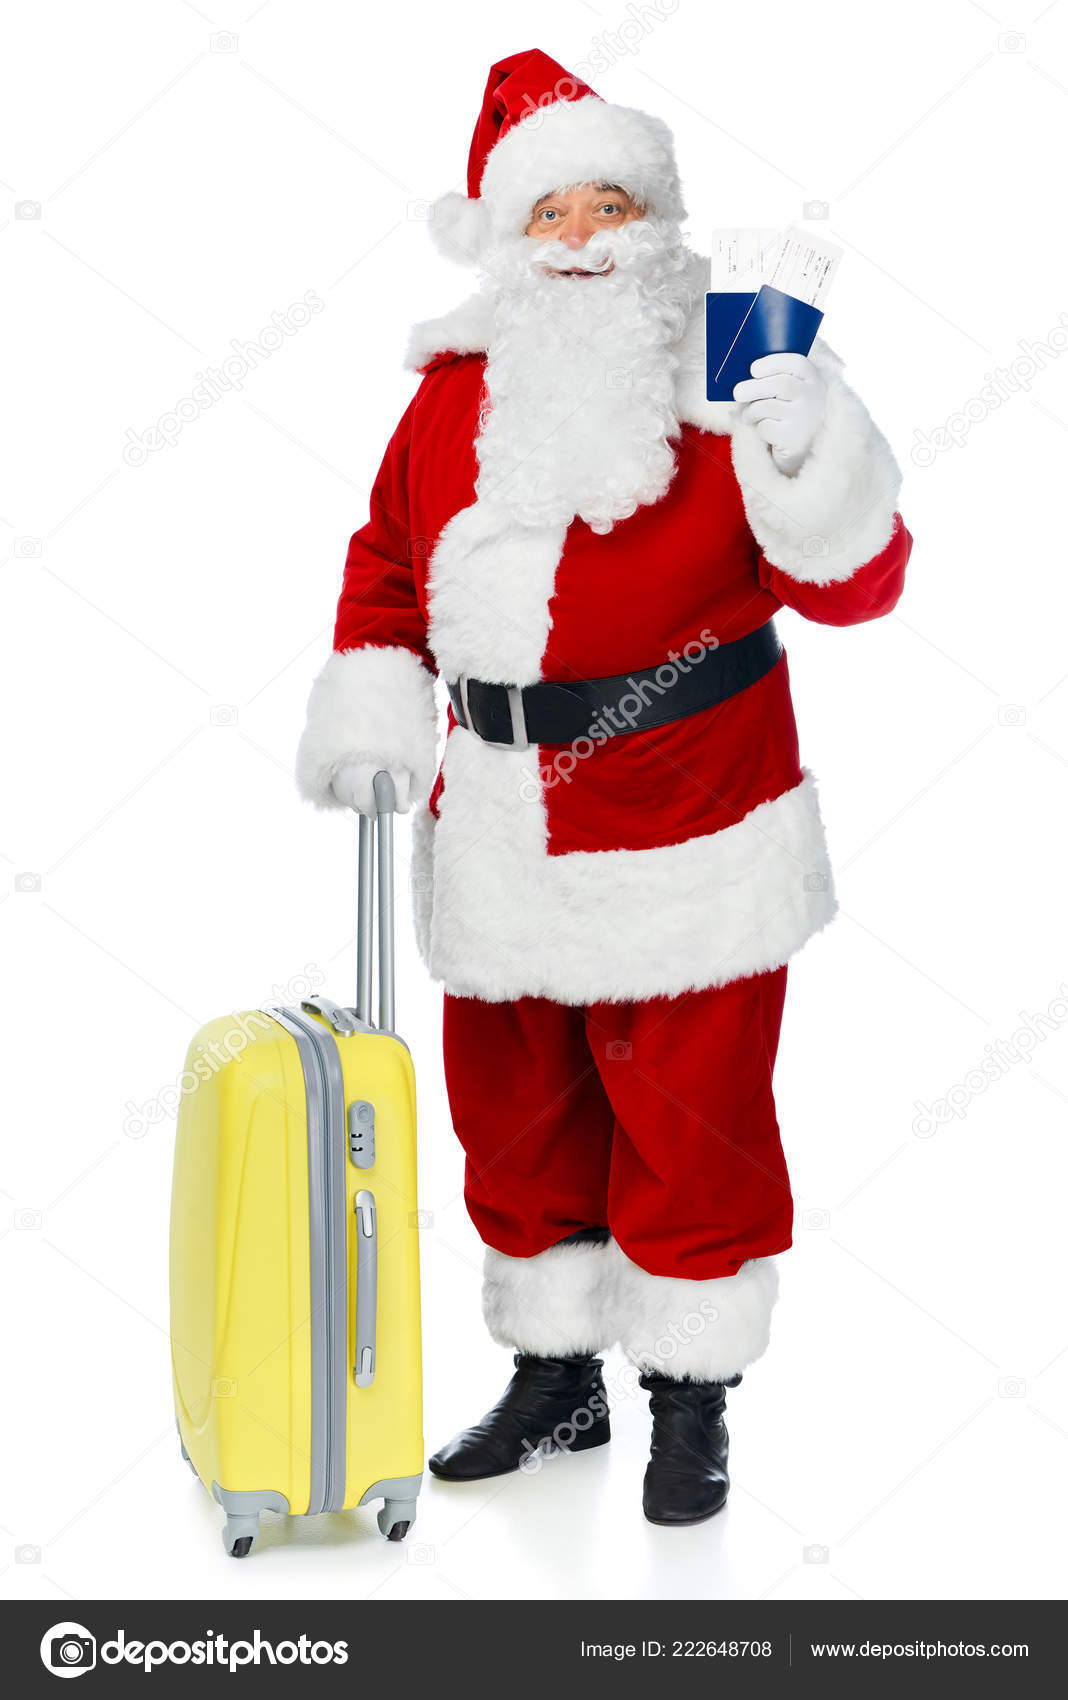 Santa Claus Travel Bag Holding Two Passports Air Tickets